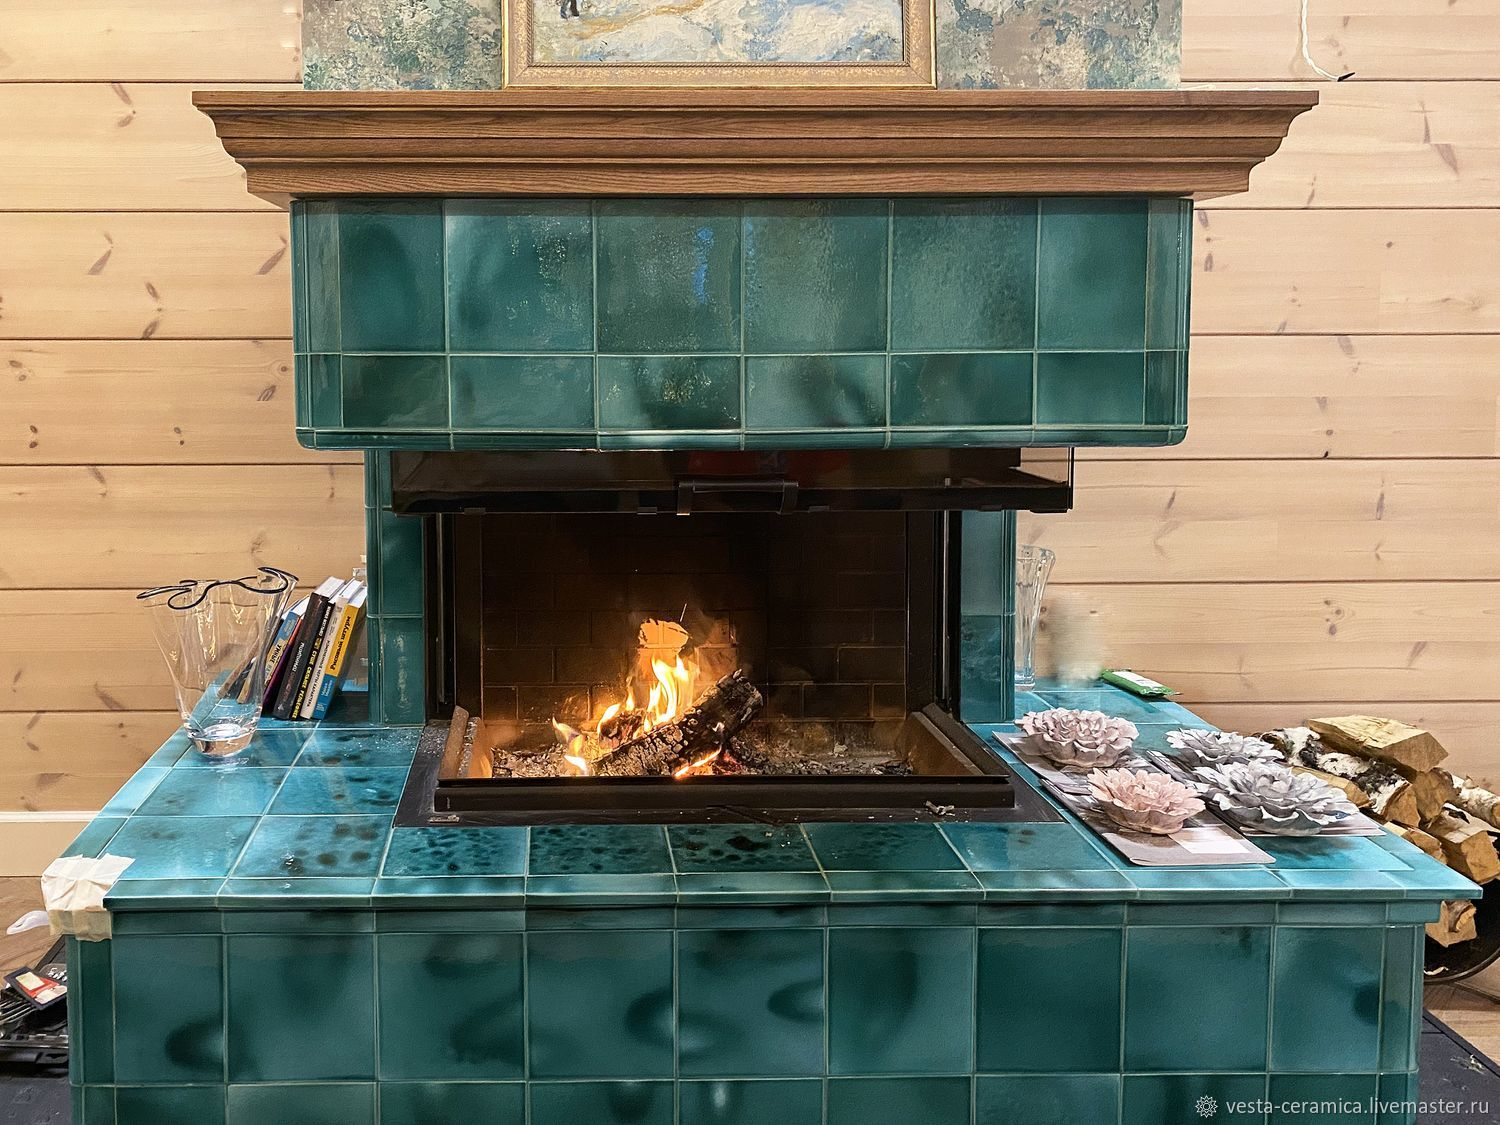 Tile fireplace 'Mallorca', Fireplaces, Moscow,  Фото №1